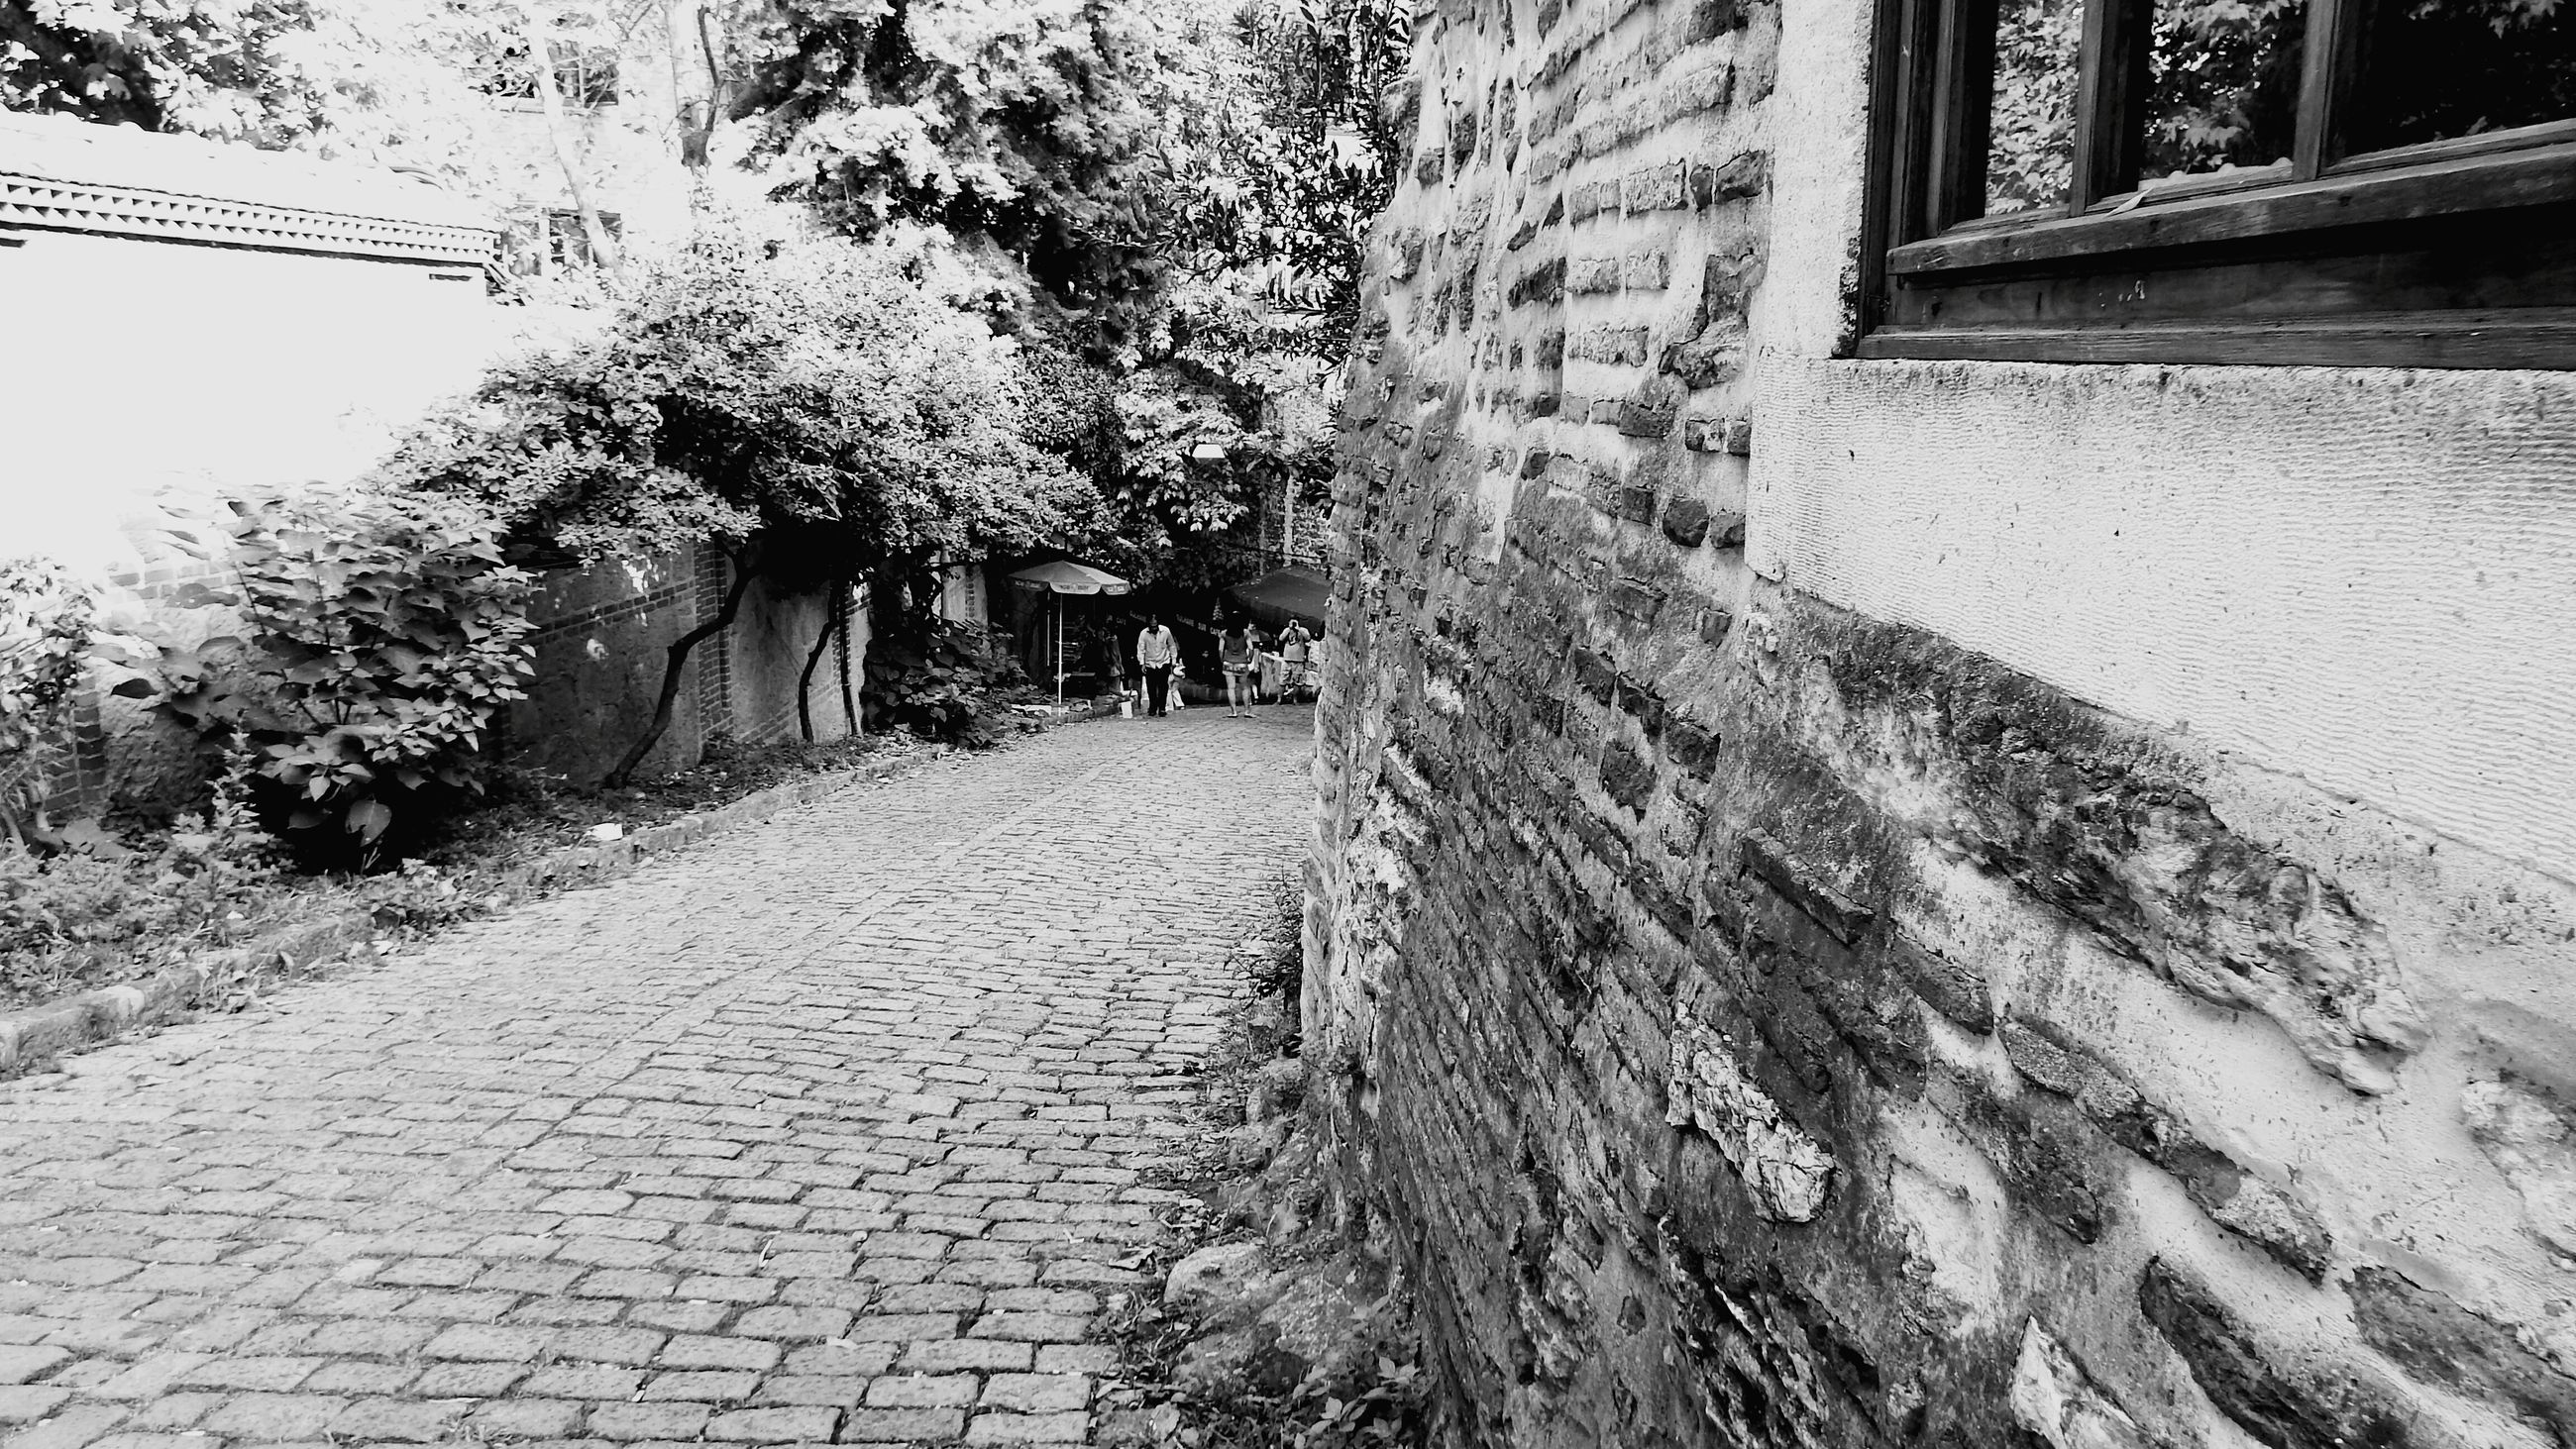 the way forward, diminishing perspective, building exterior, built structure, architecture, vanishing point, street, narrow, tree, long, footpath, transportation, road, pathway, cobblestone, house, walkway, empty, outdoors, day